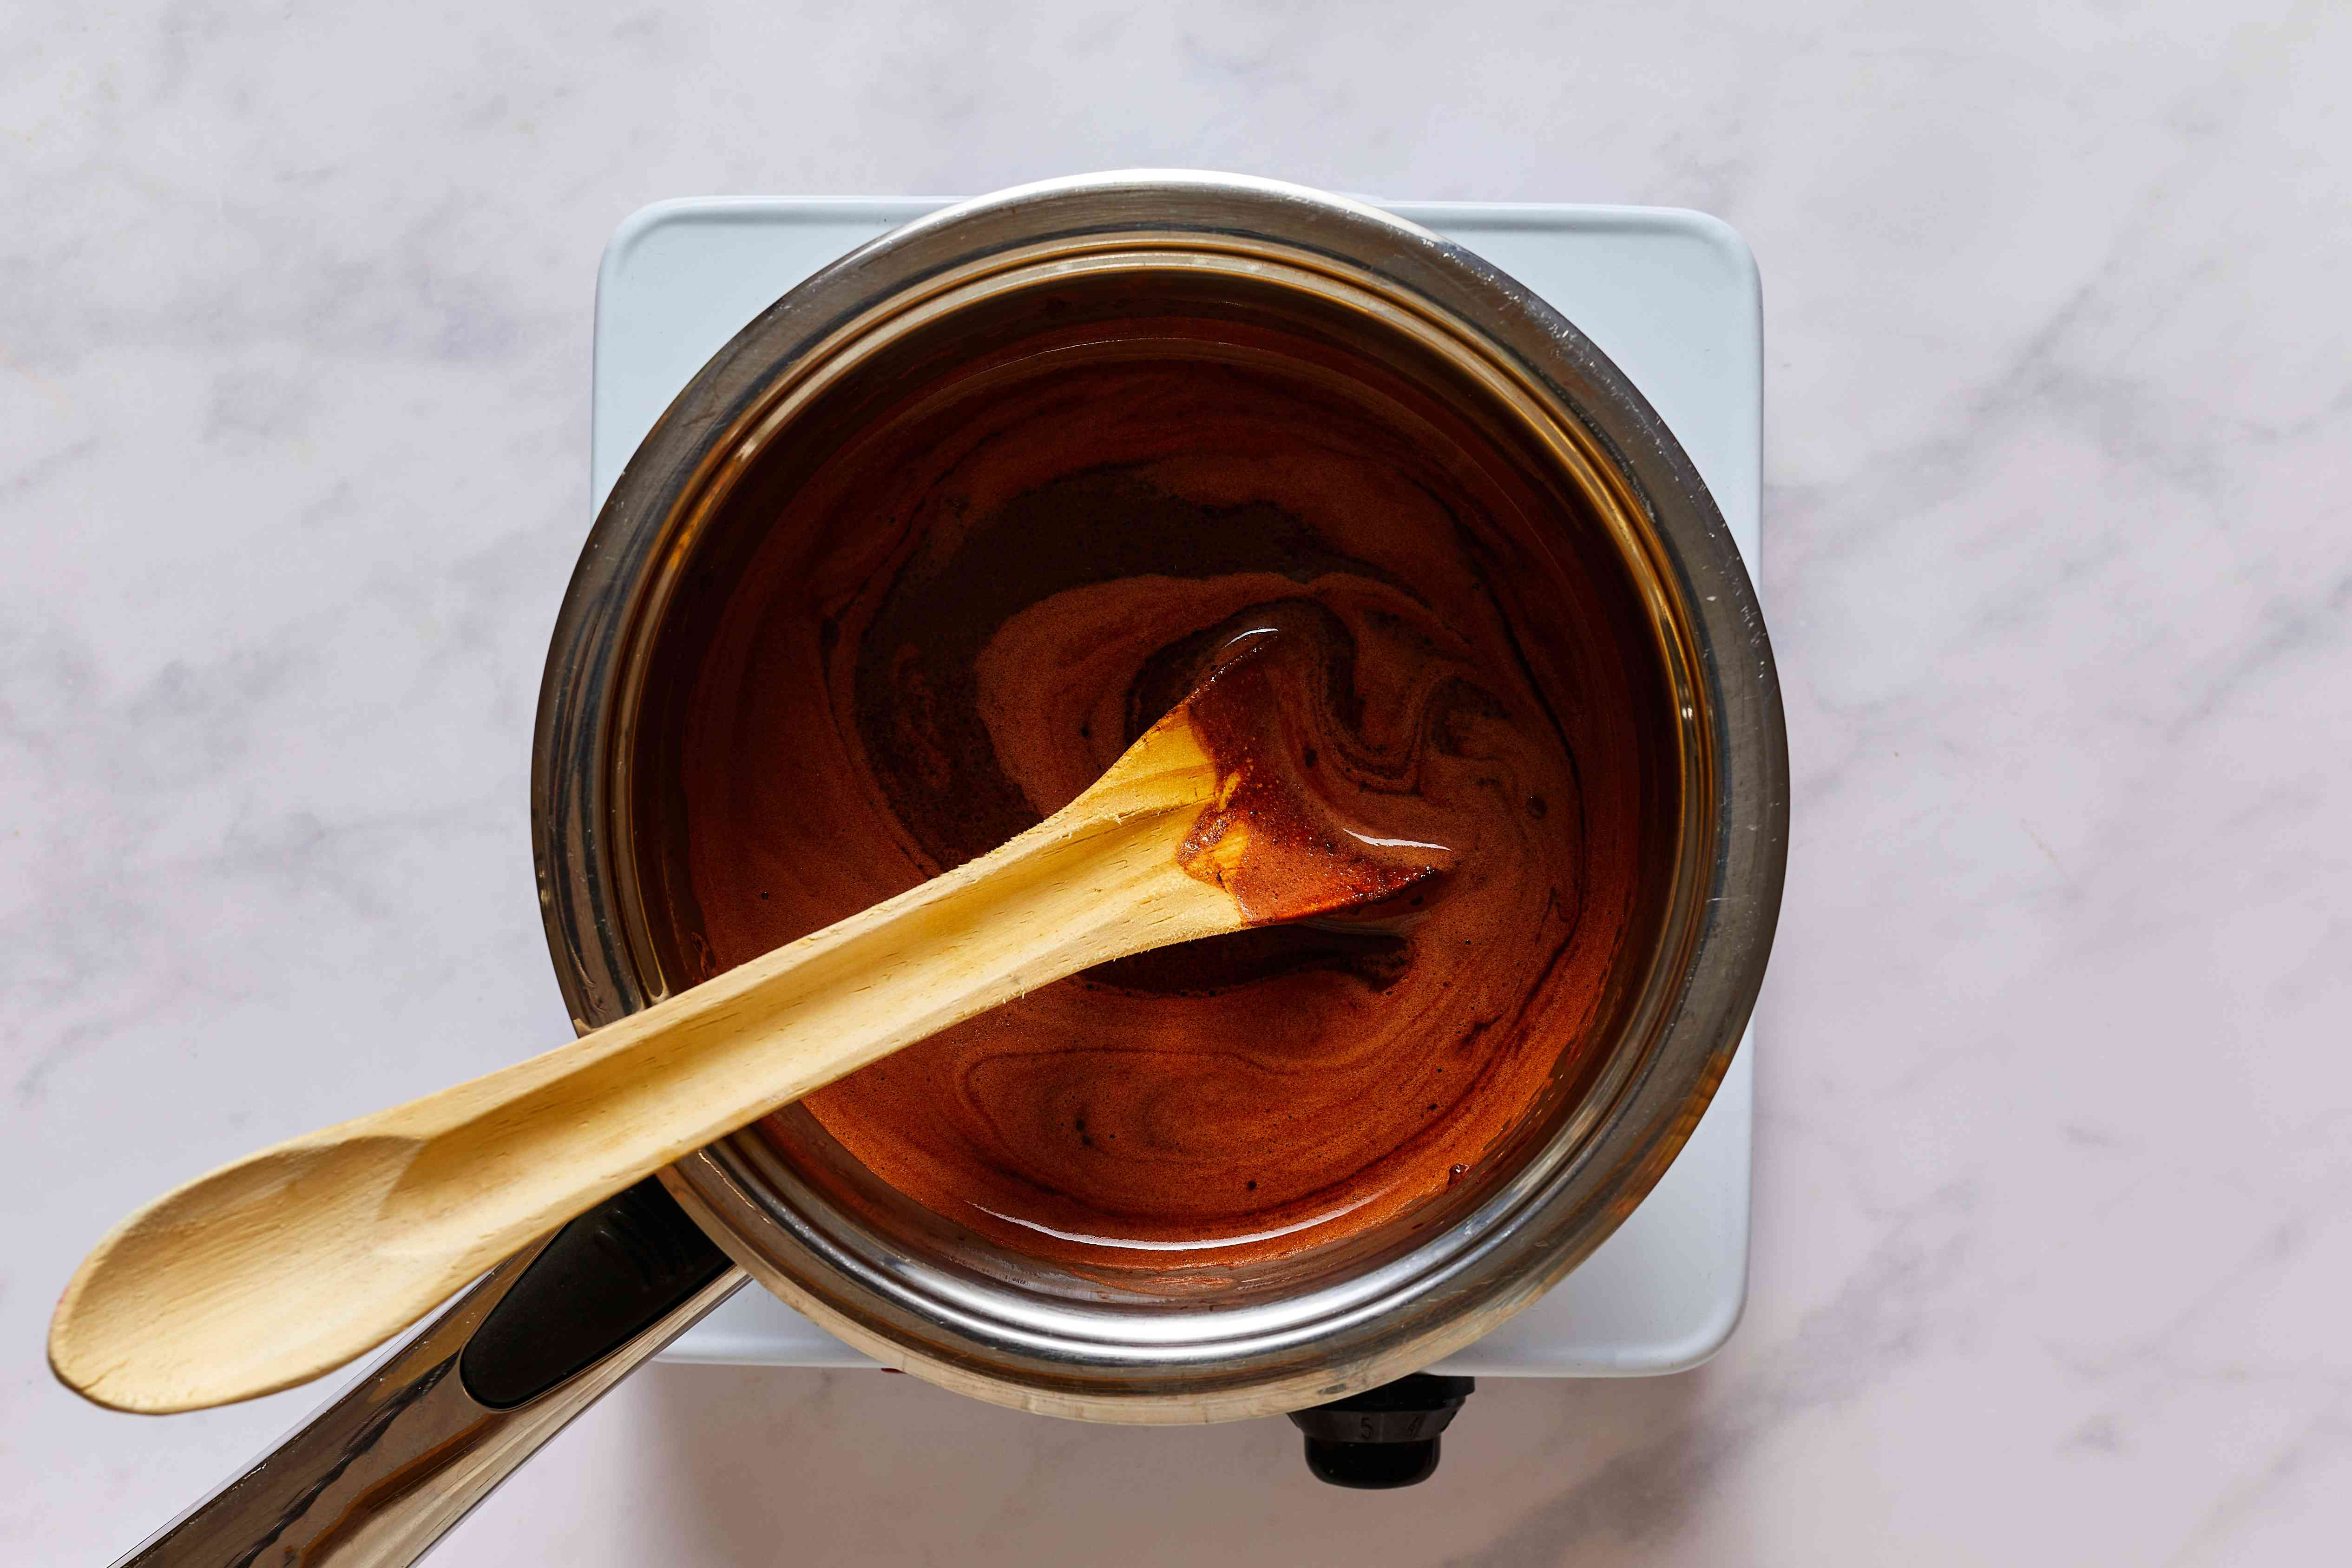 combine the butter, shortening, coffee, and cocoa in a saucepan